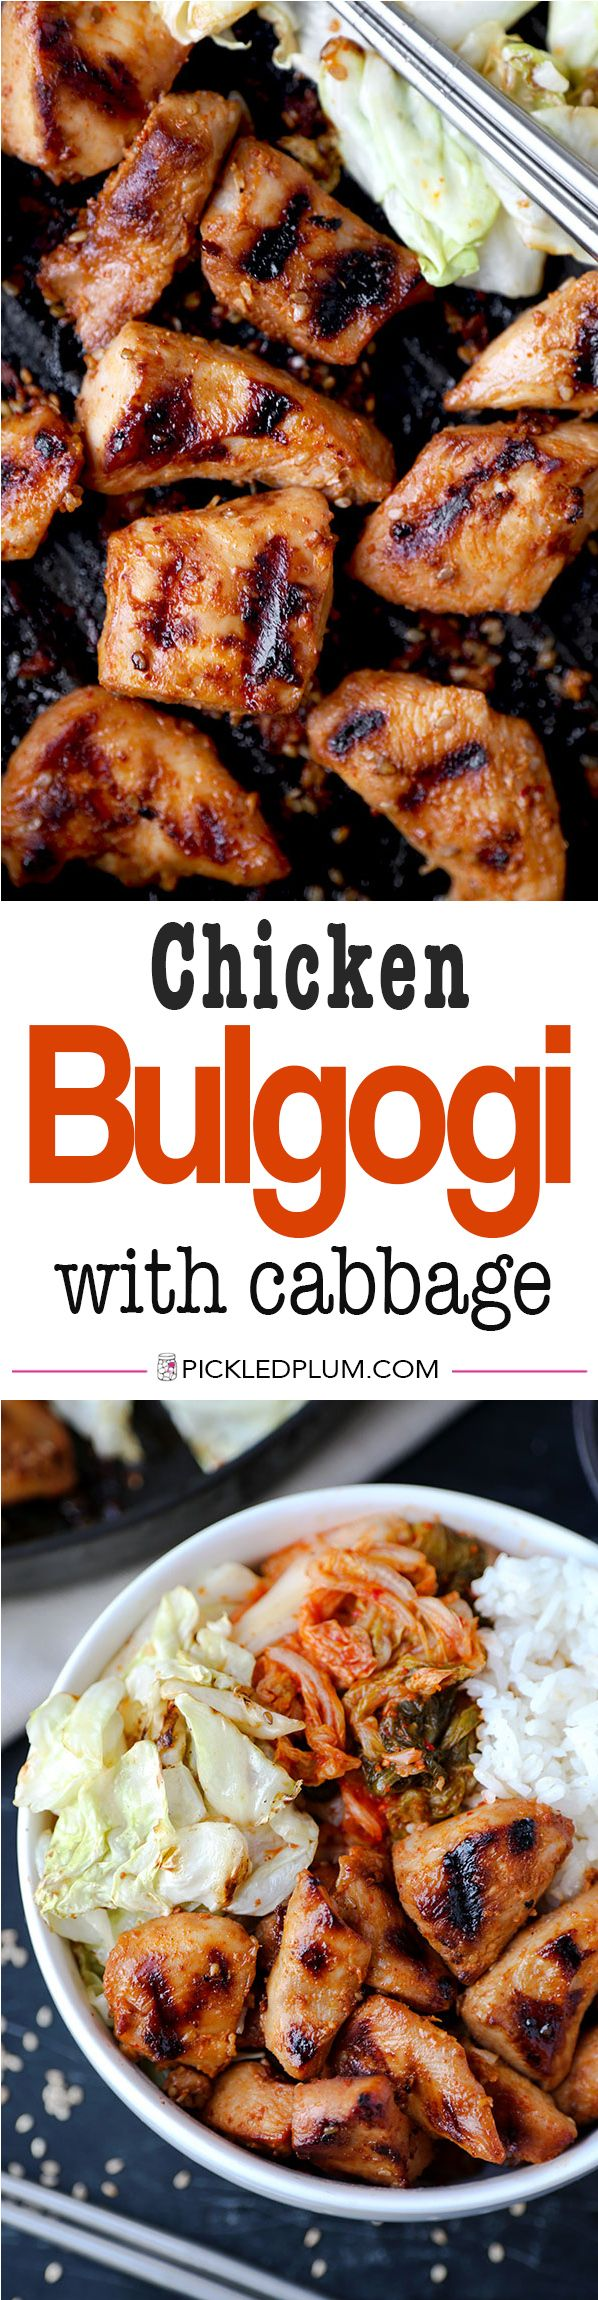 Chicken Bulgogi With Cabbage -  Bring authentic Korean barbecue flavors to your home with this easy and very delicious chicken bulgogi with cabbage recipe! Chicken, Korean, recipe, barbecue, dinner | pickledplum.com